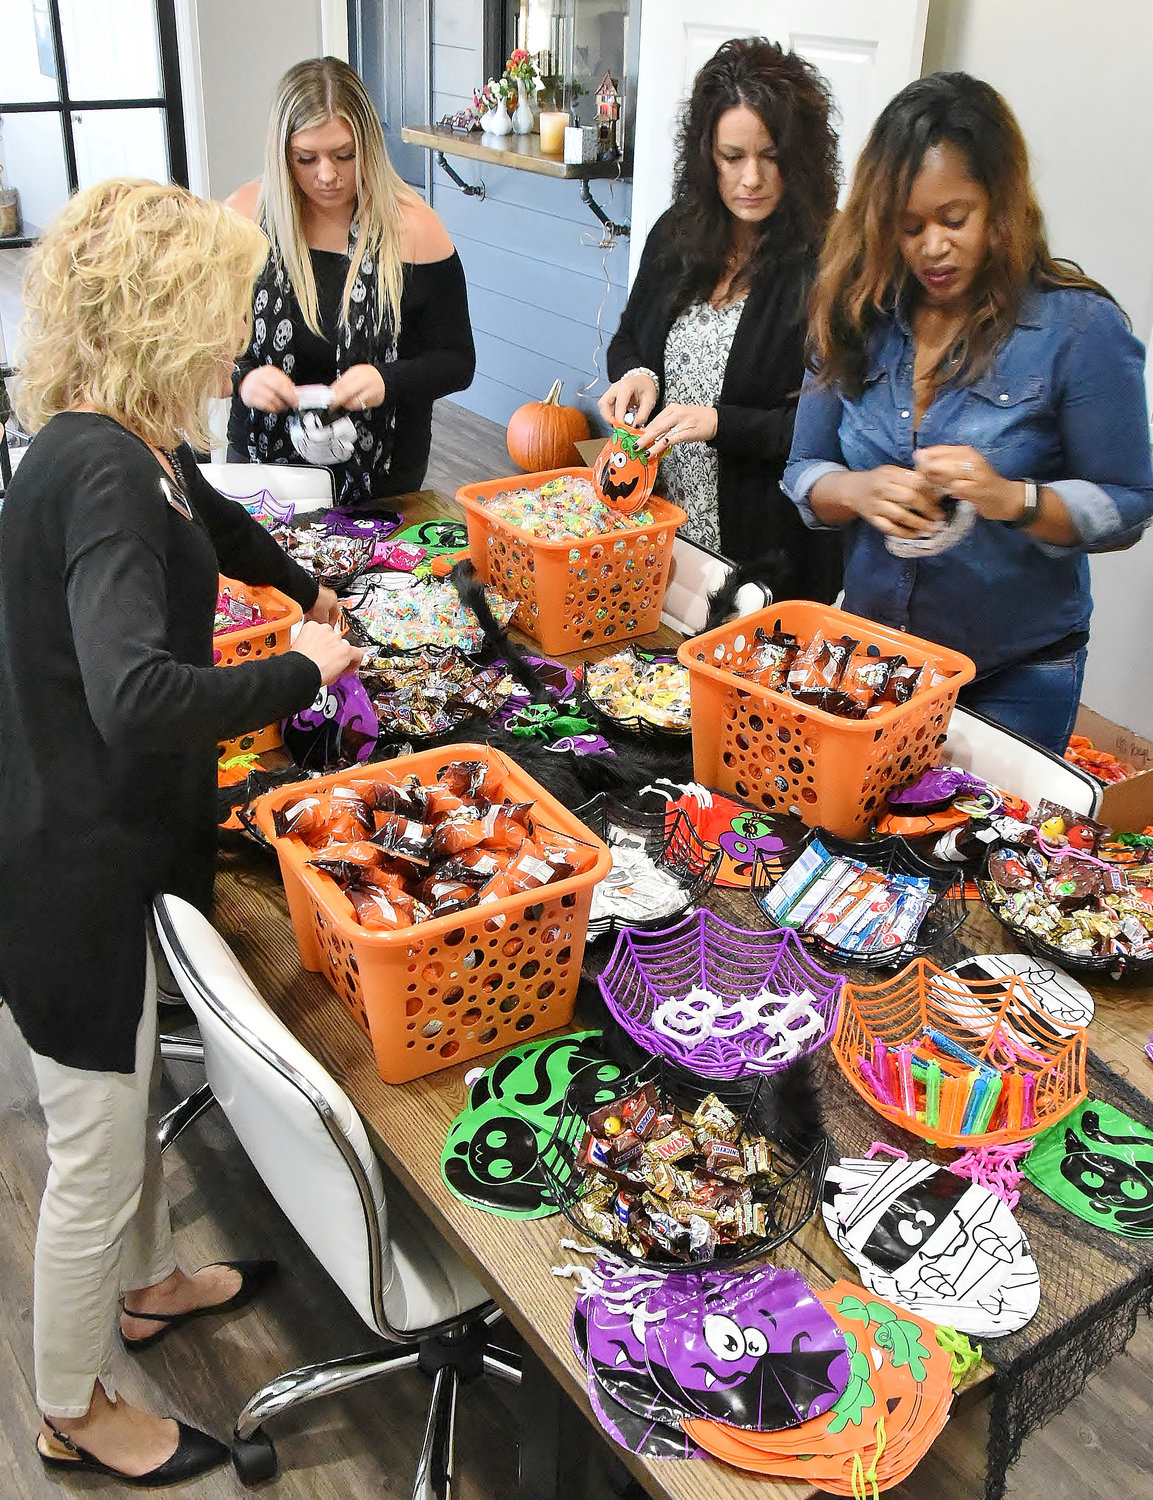 Halloween Cartersville Ga 2020 Halloween events take shape across Bartow | The Daily Tribune News